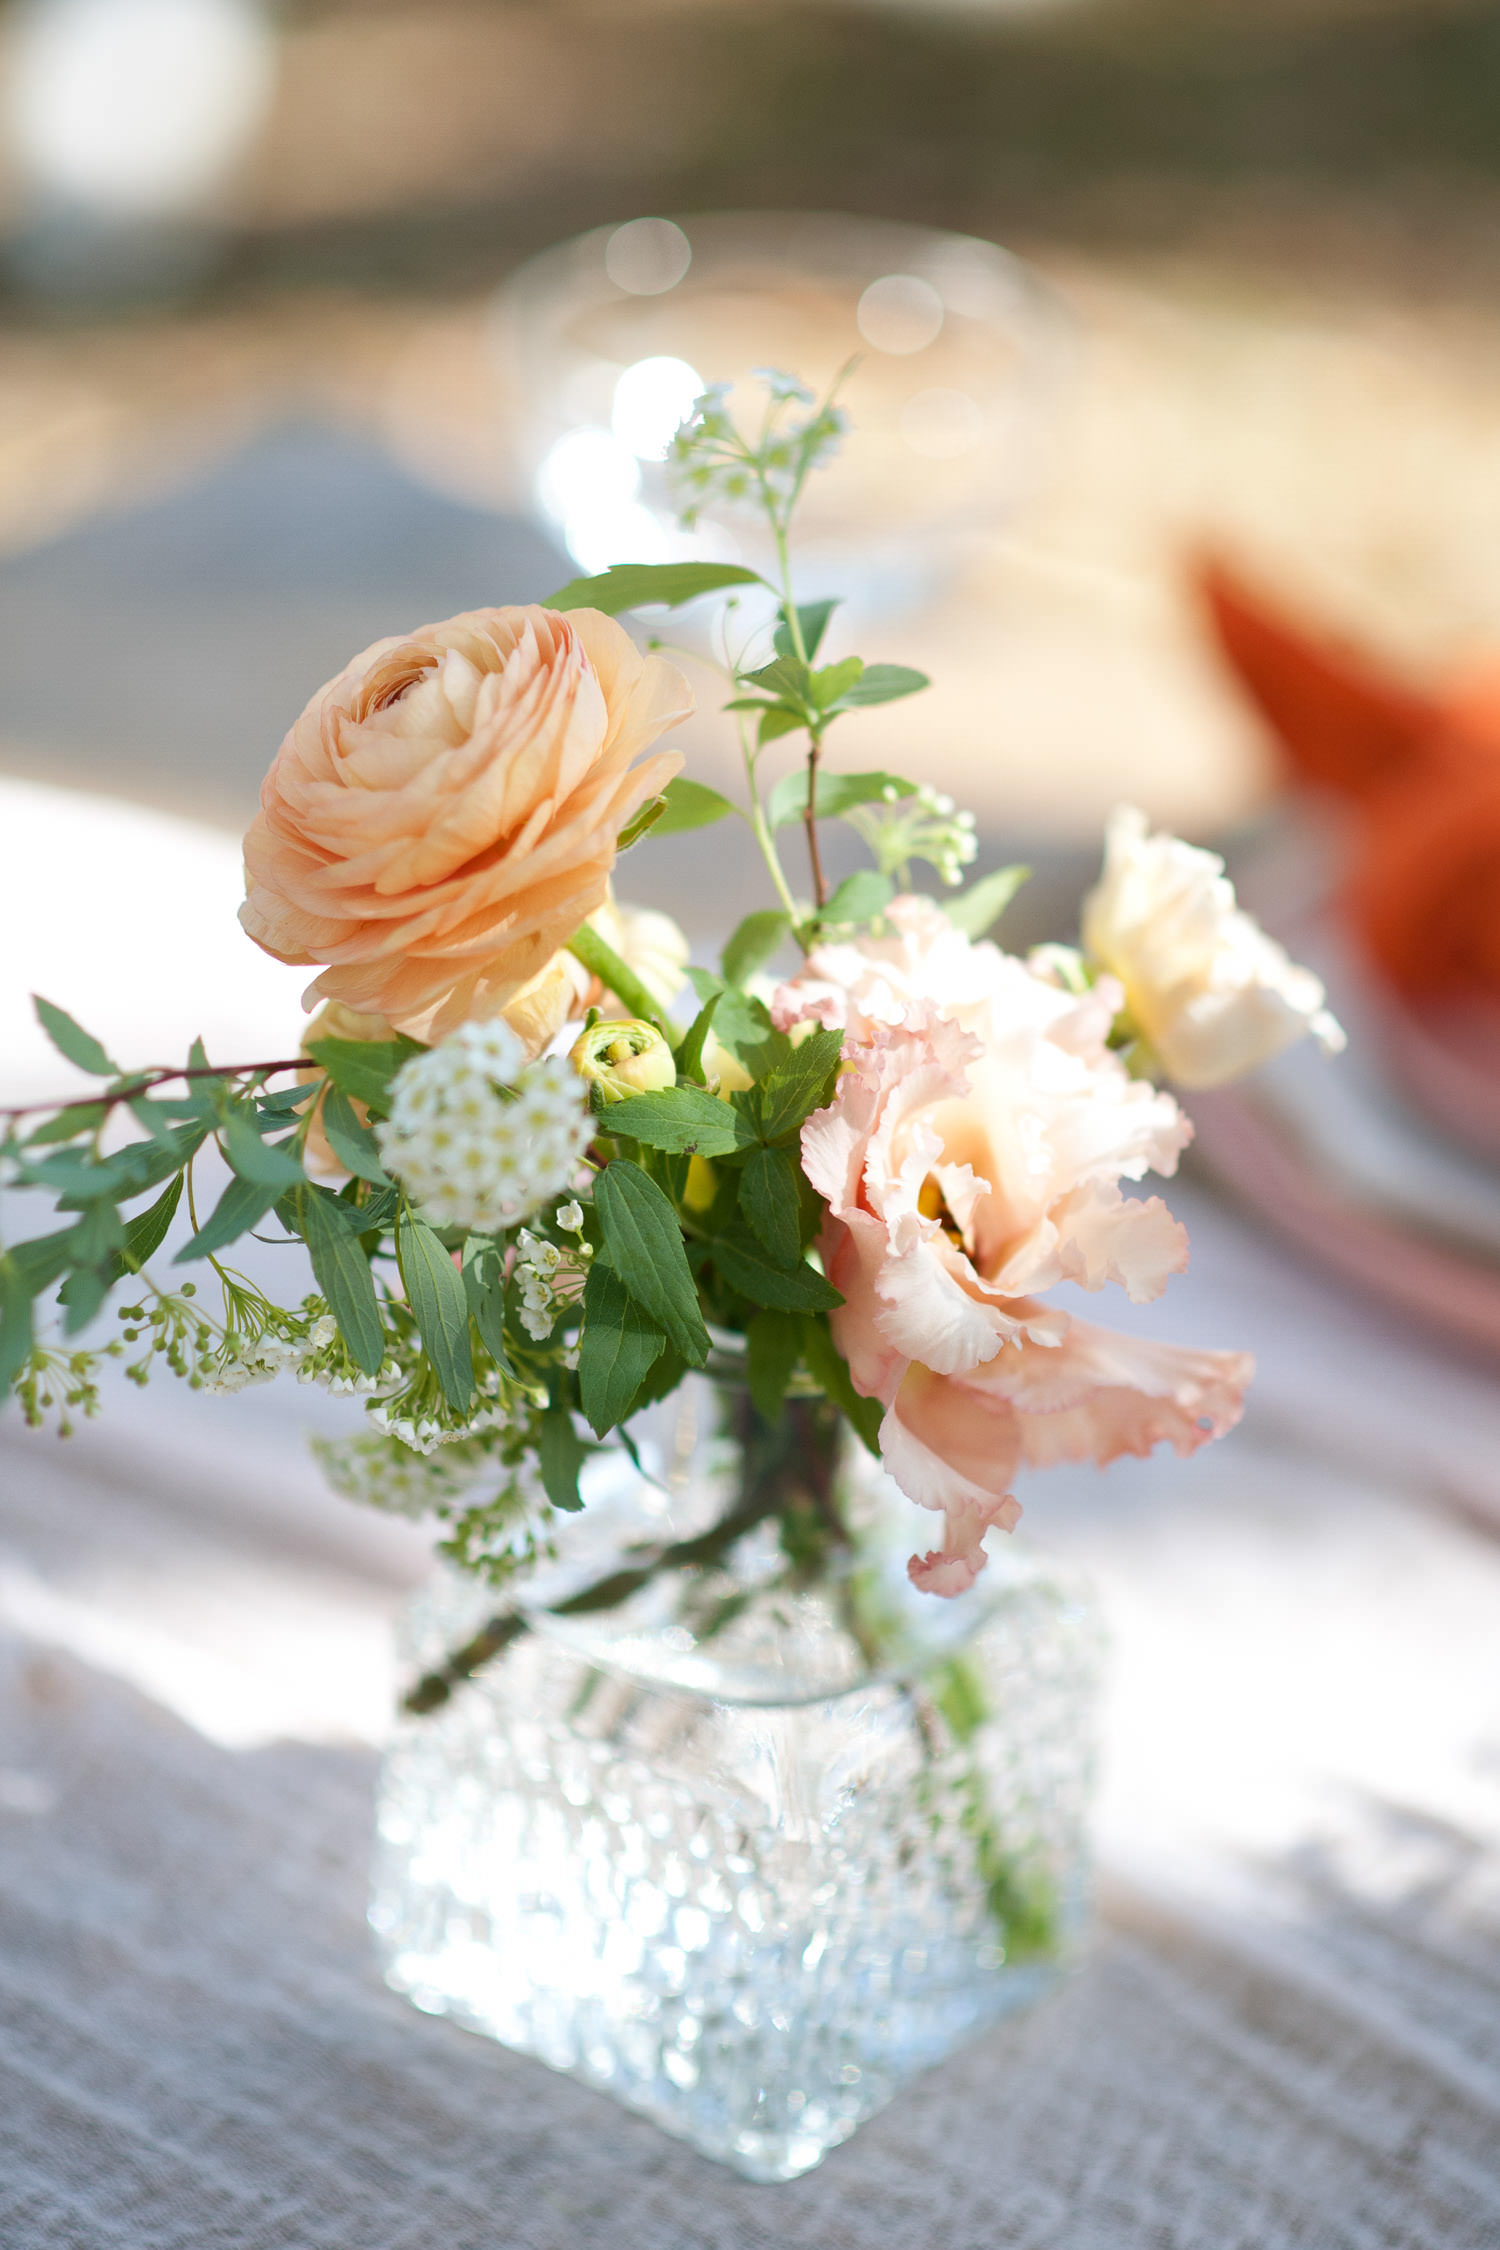 Vase of spring flowers at a garden wedding captured by Tara Whittaker Photography